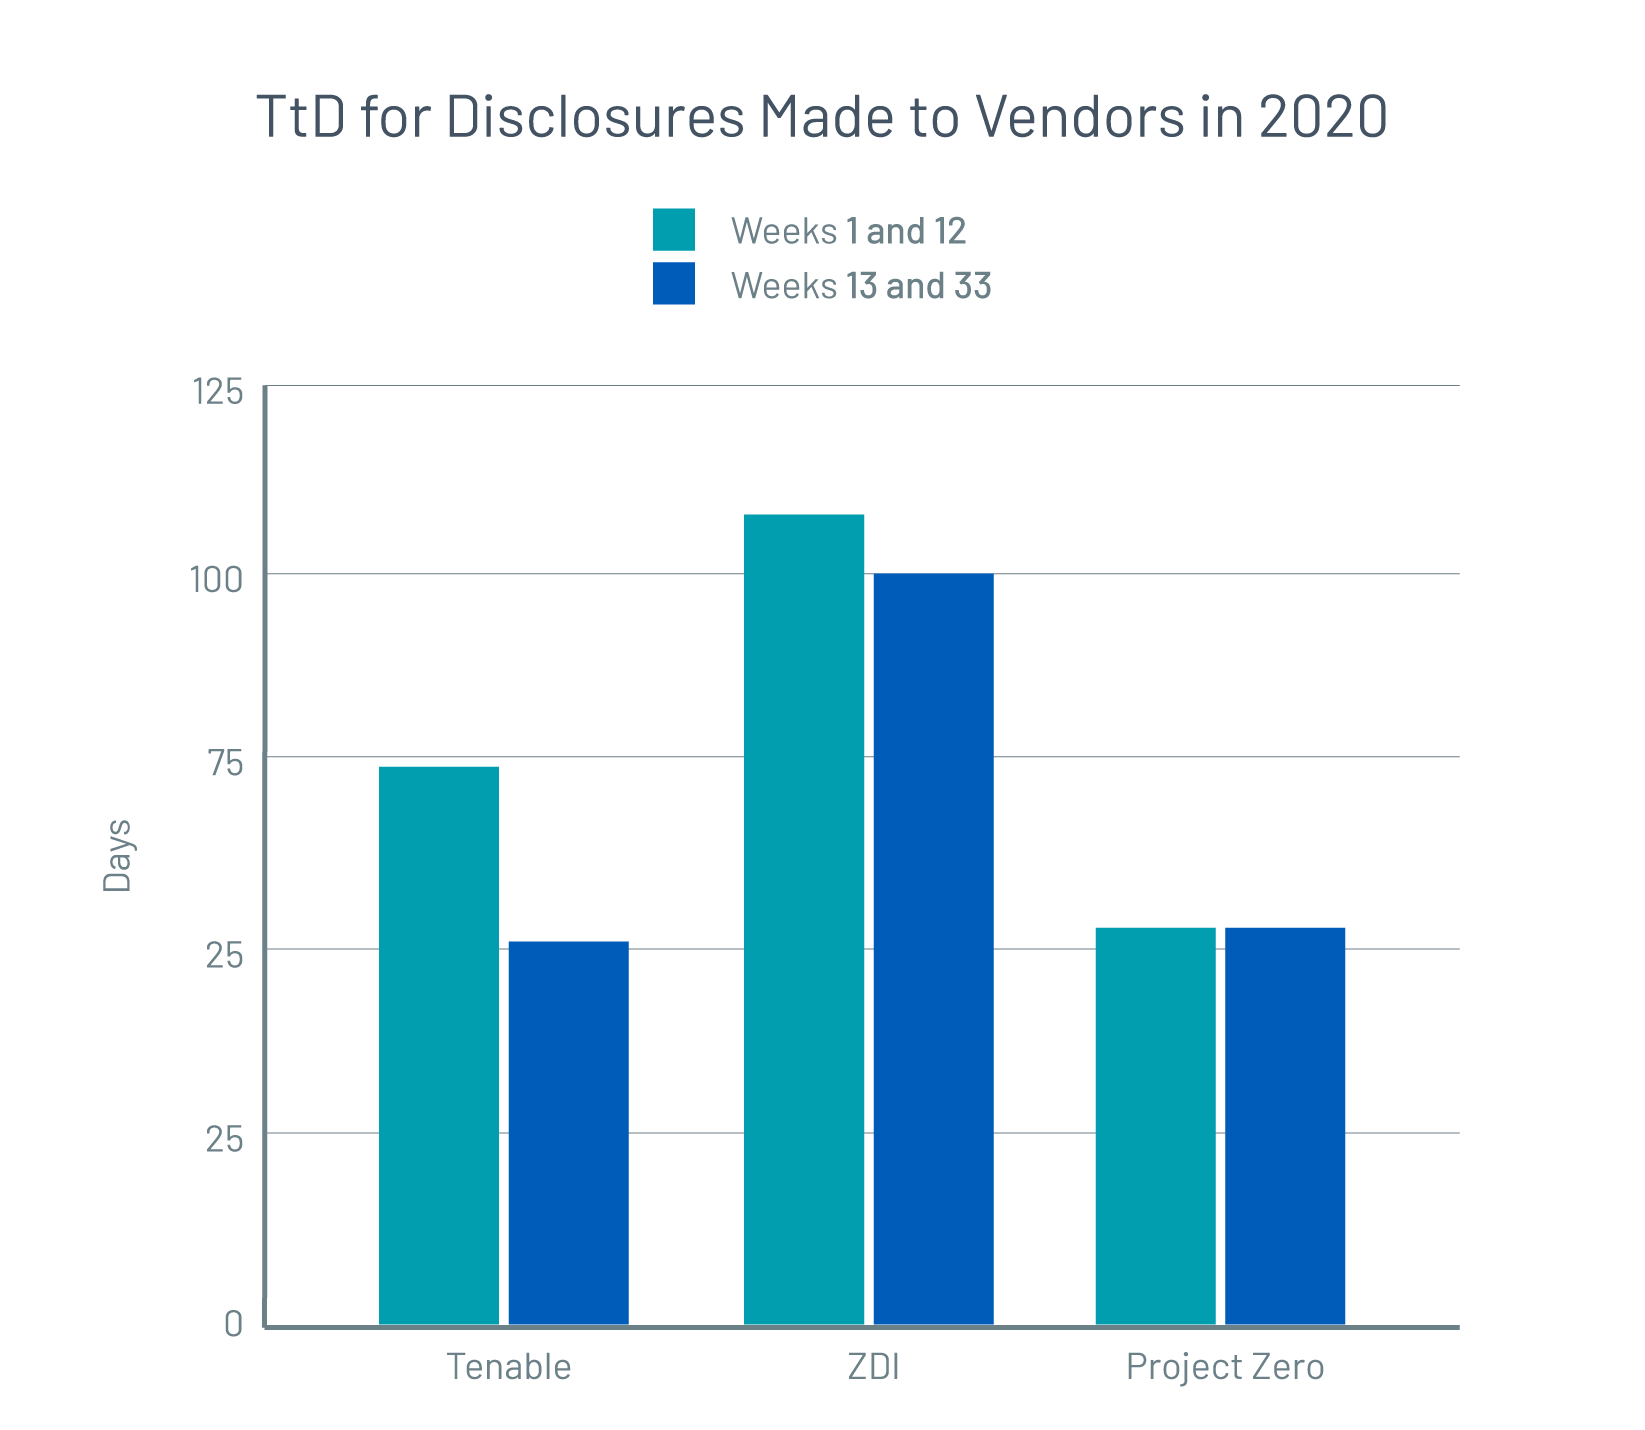 Time to public disclosure for vulnerabilities reported to vendors in first-half 2020